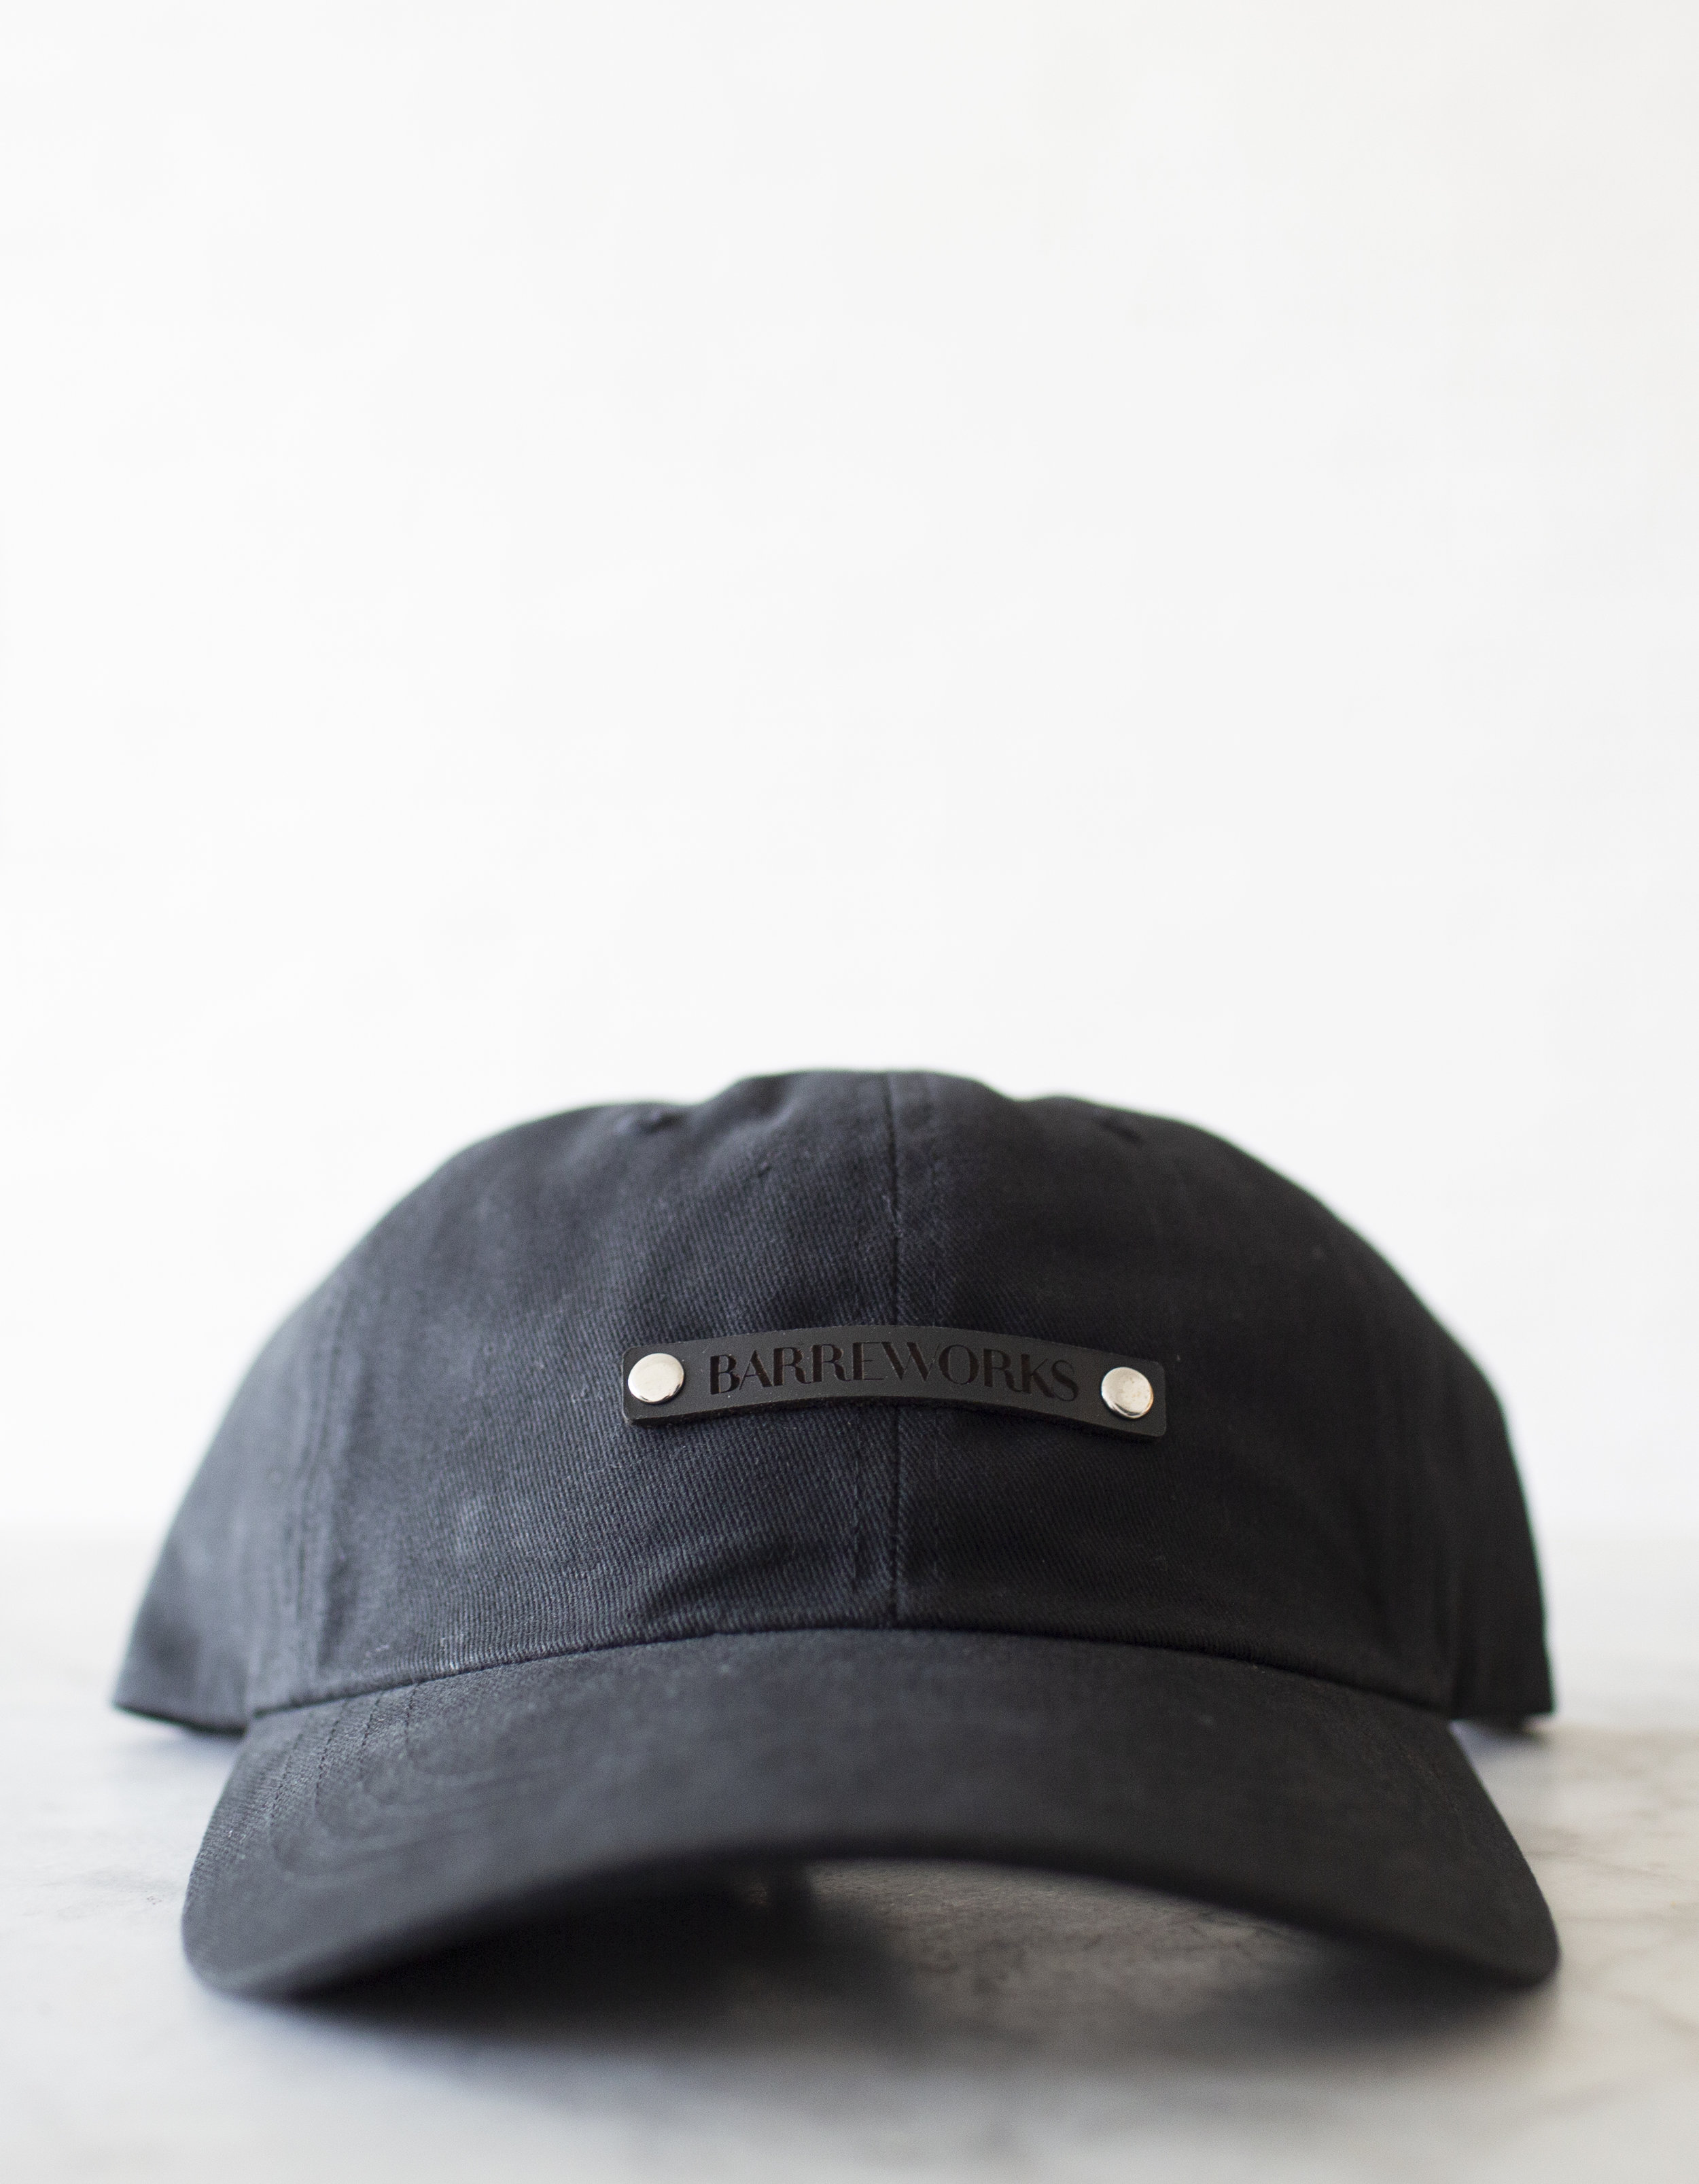 Barreworks Dad Hat